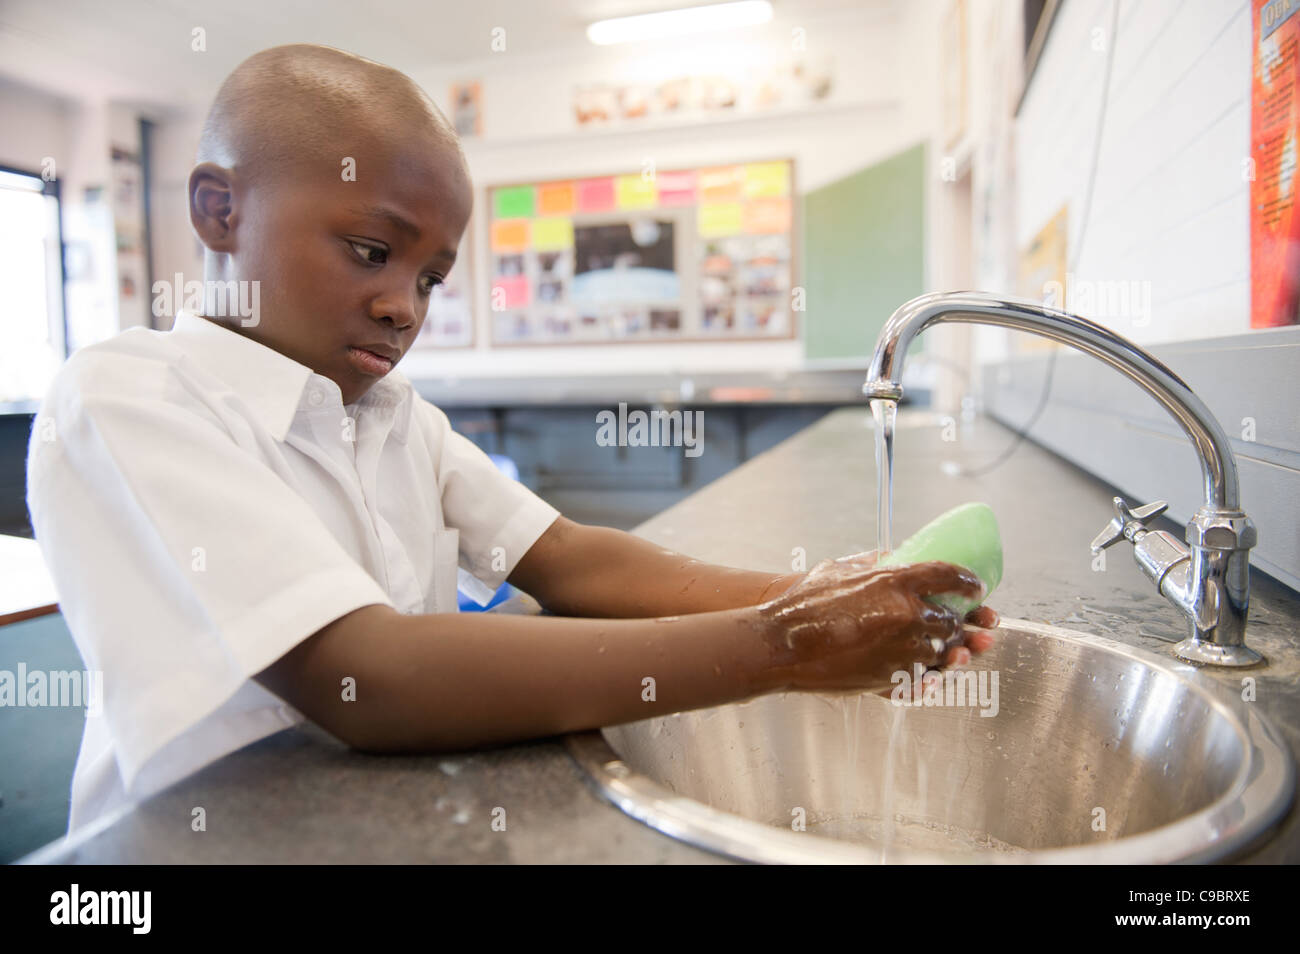 Boy washing hands with soap in classroom, Johannesburg, Gauteng Province, South Africa Stock Photo